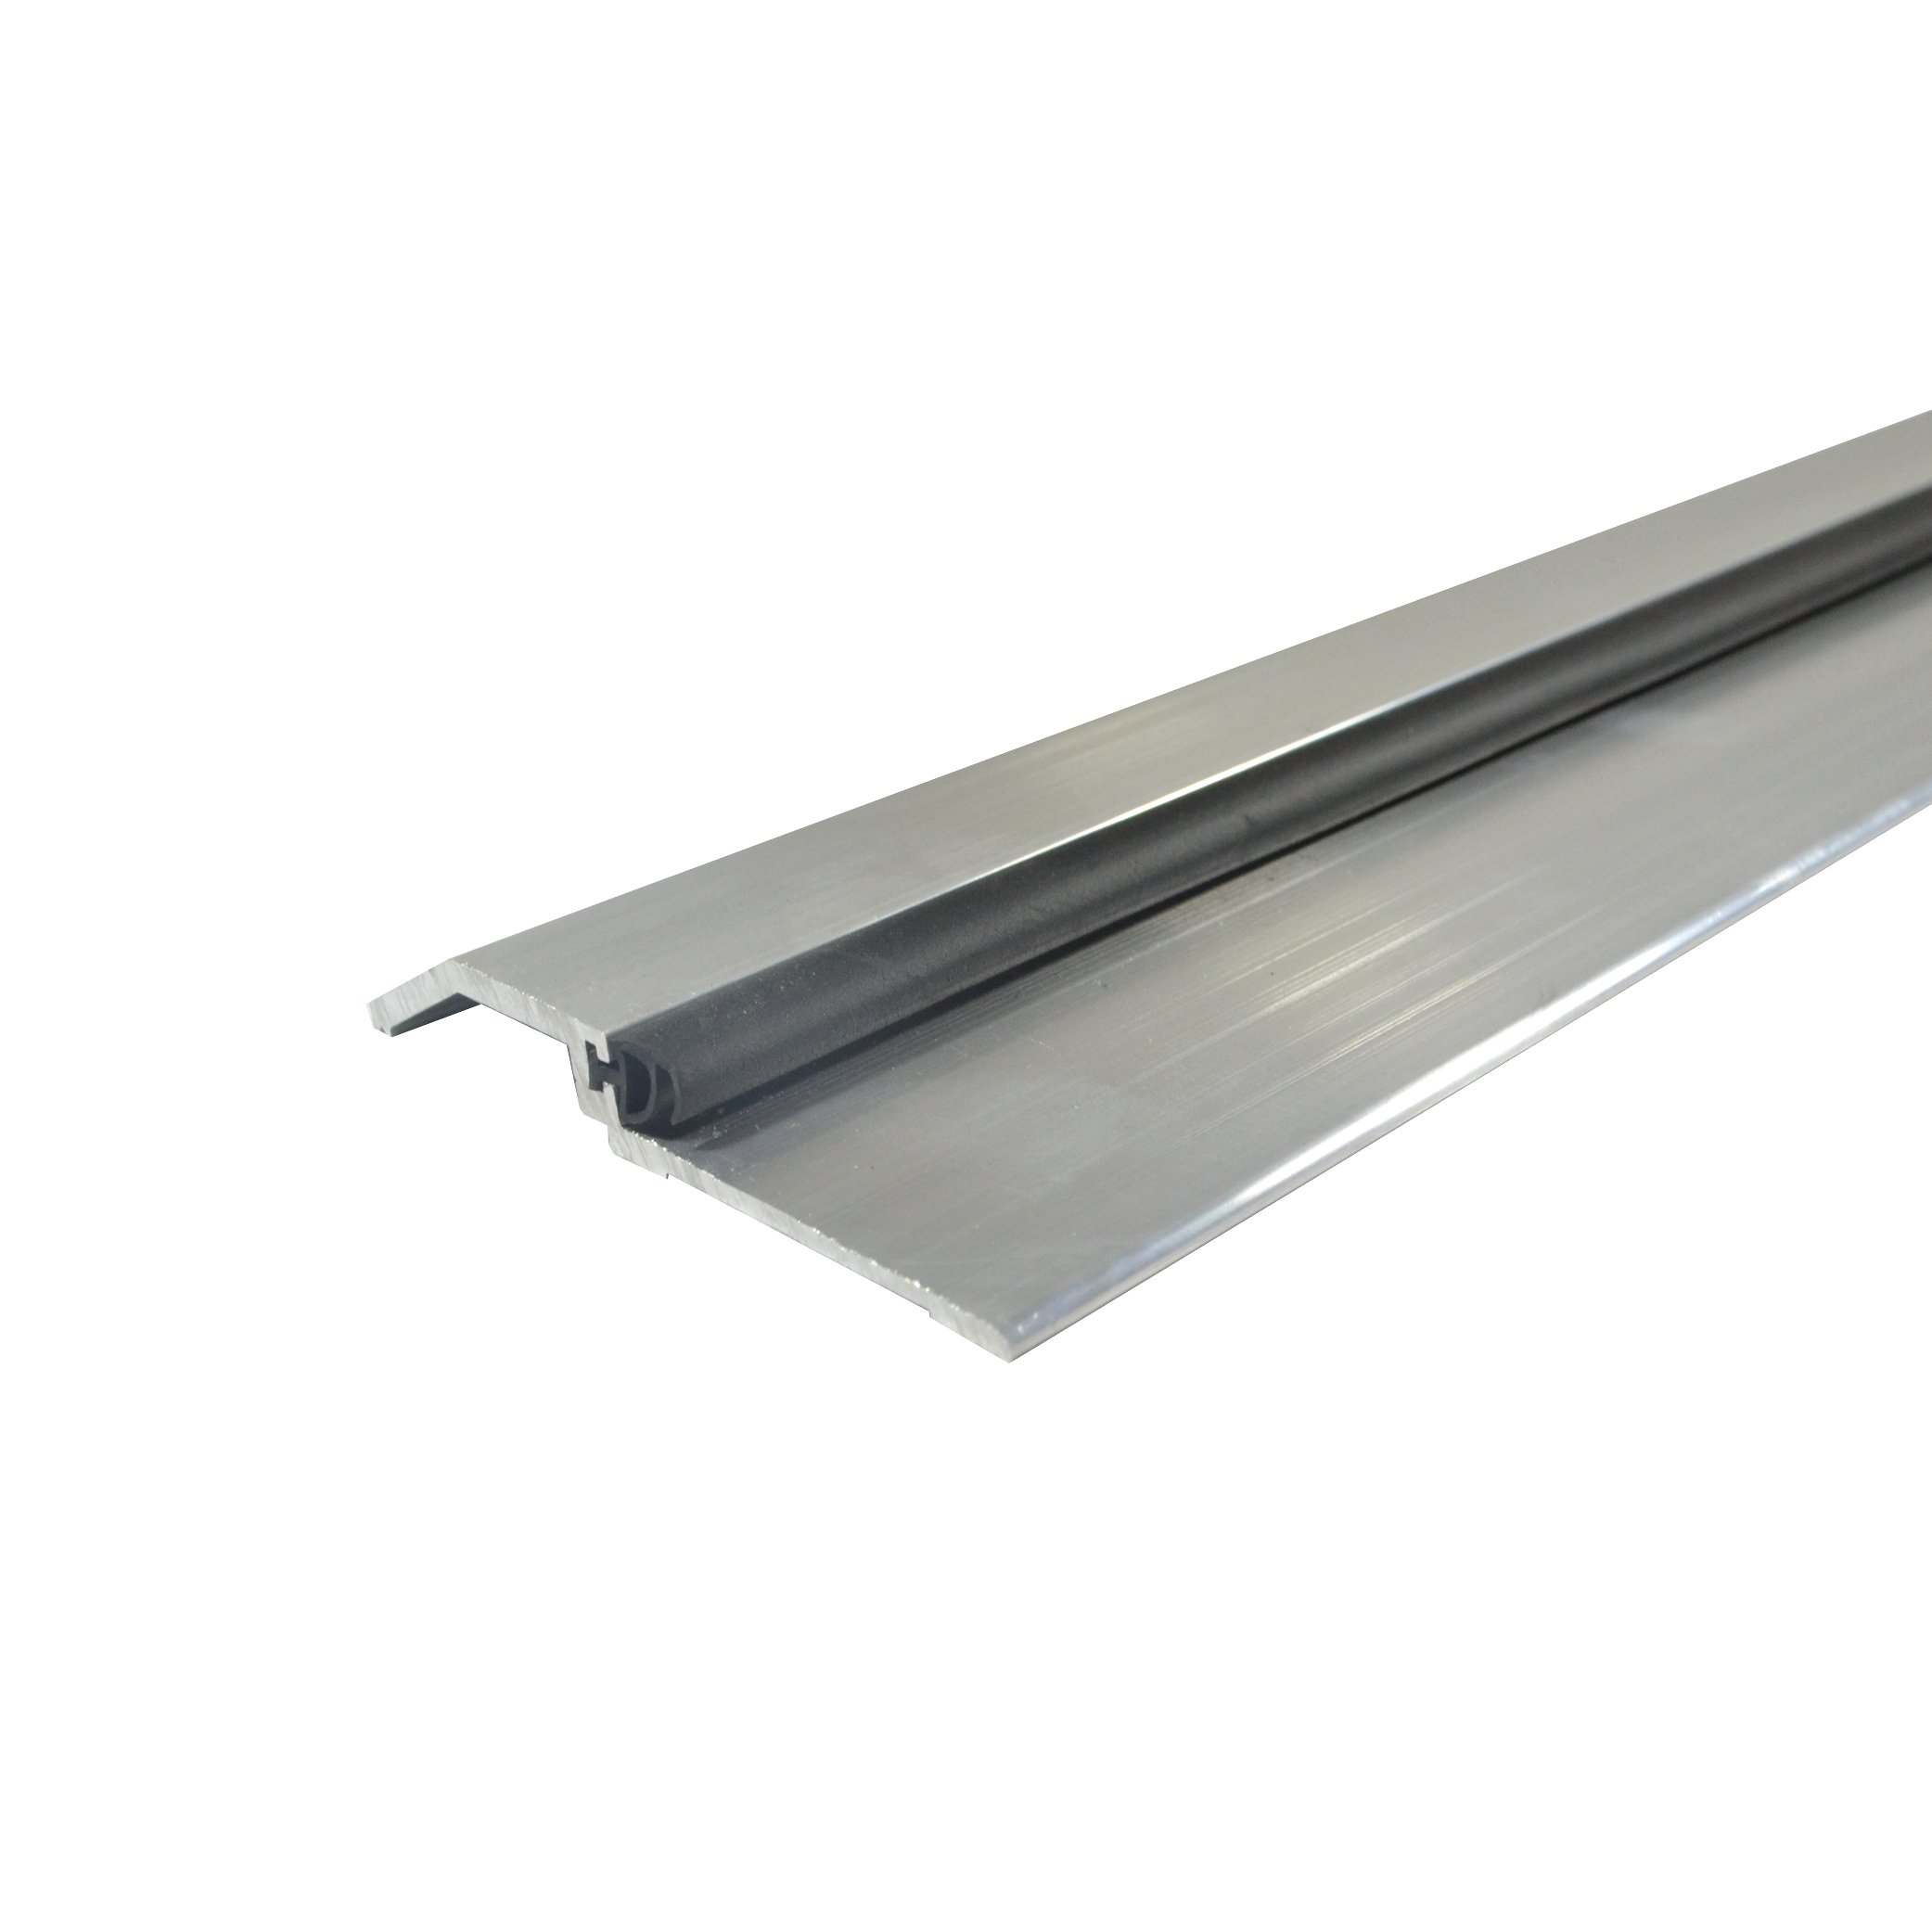 Mill Aluminum High Rabbeted Threshold/Saddle with Solid Rubber Extrusion (3465MA), FH #10 x 1-1/2'' Supplied, (3-11/16'' W x 1/2'' H x 48'' L)